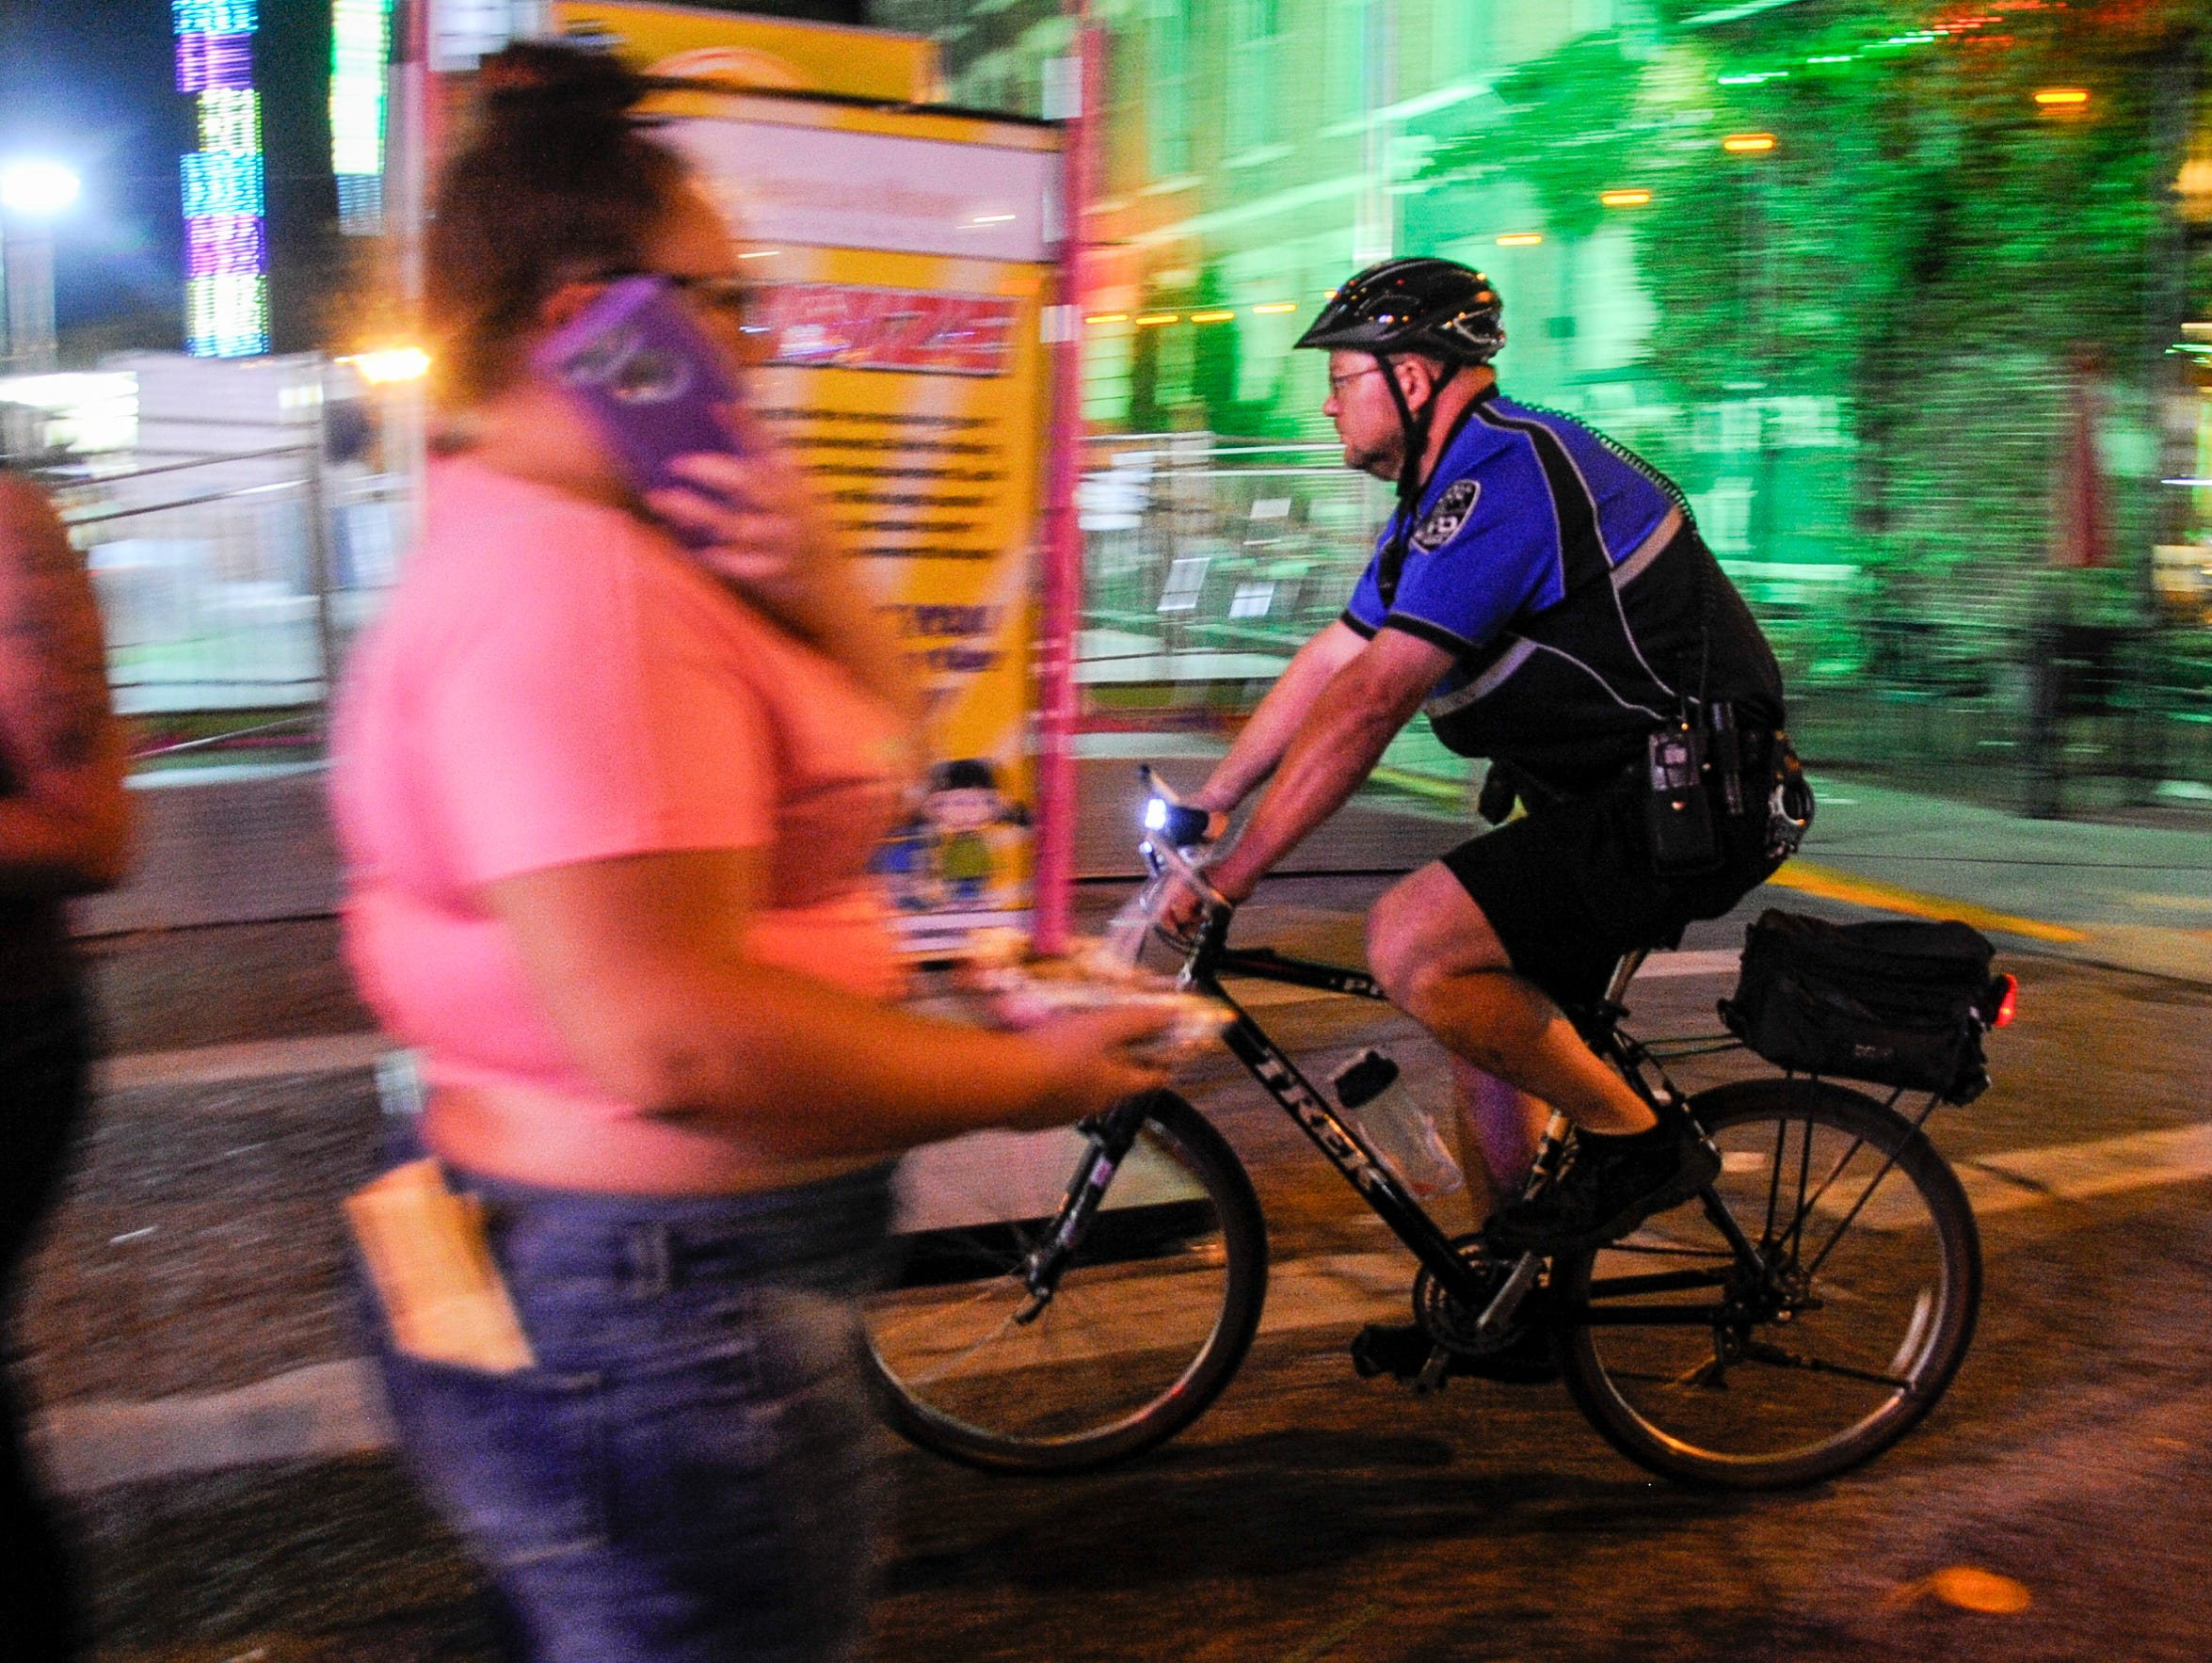 An EPD officer on bike patrol rides into the game